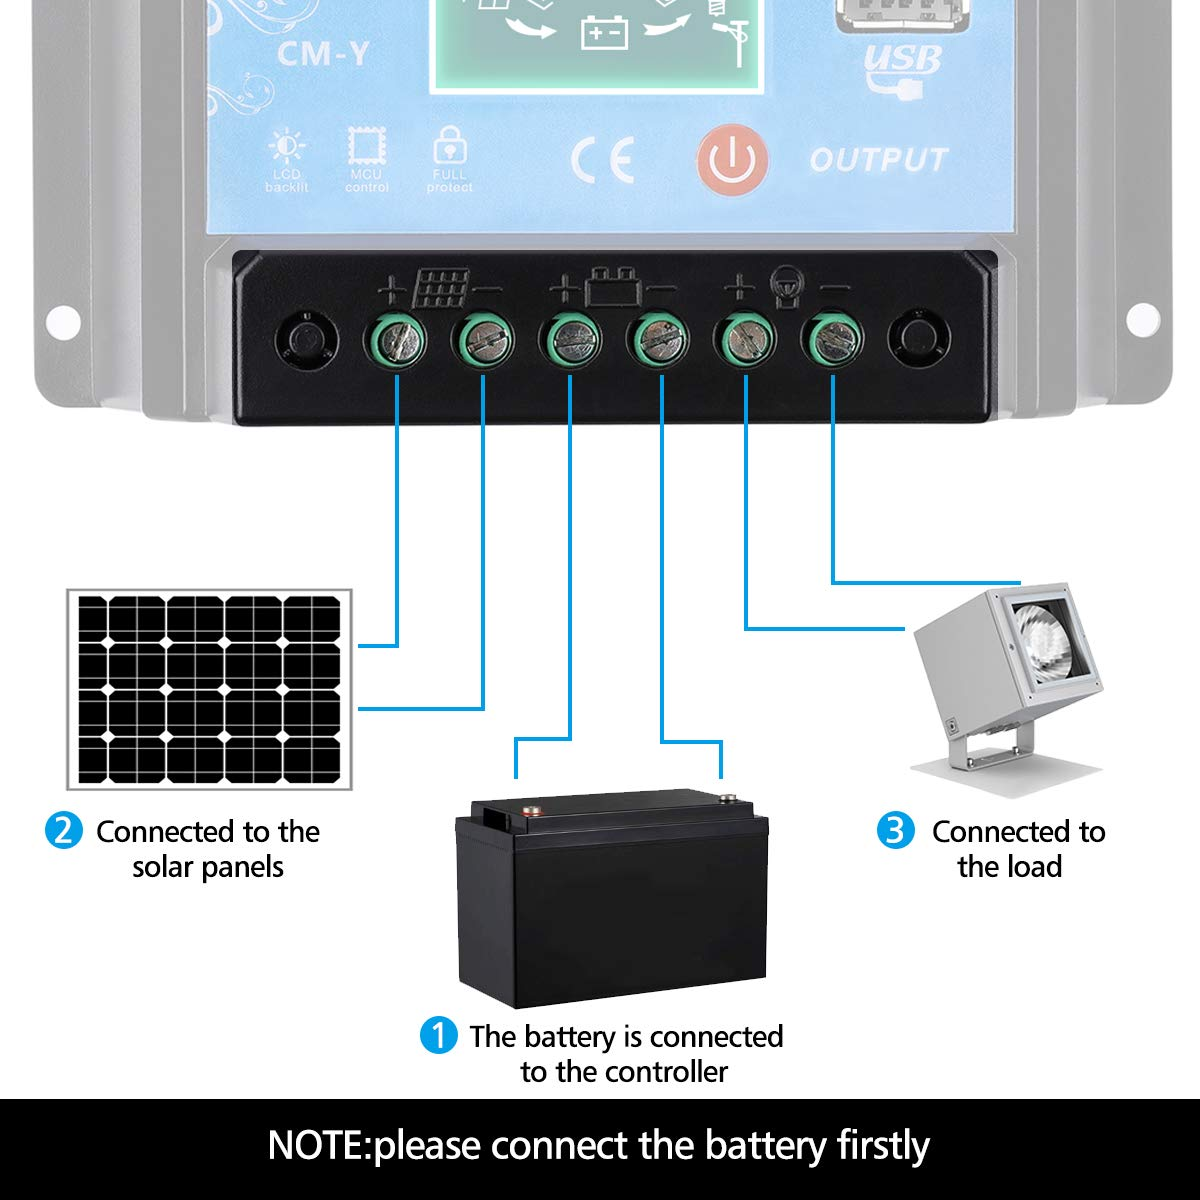 Mohoo 20a Charge Controller Solar Regulator Pwm 10a 12v24v Automatic Art Of Circuits Intelligent With Dual Usb Port Back Light Lcd Display 12v 24vnew Desing Garden